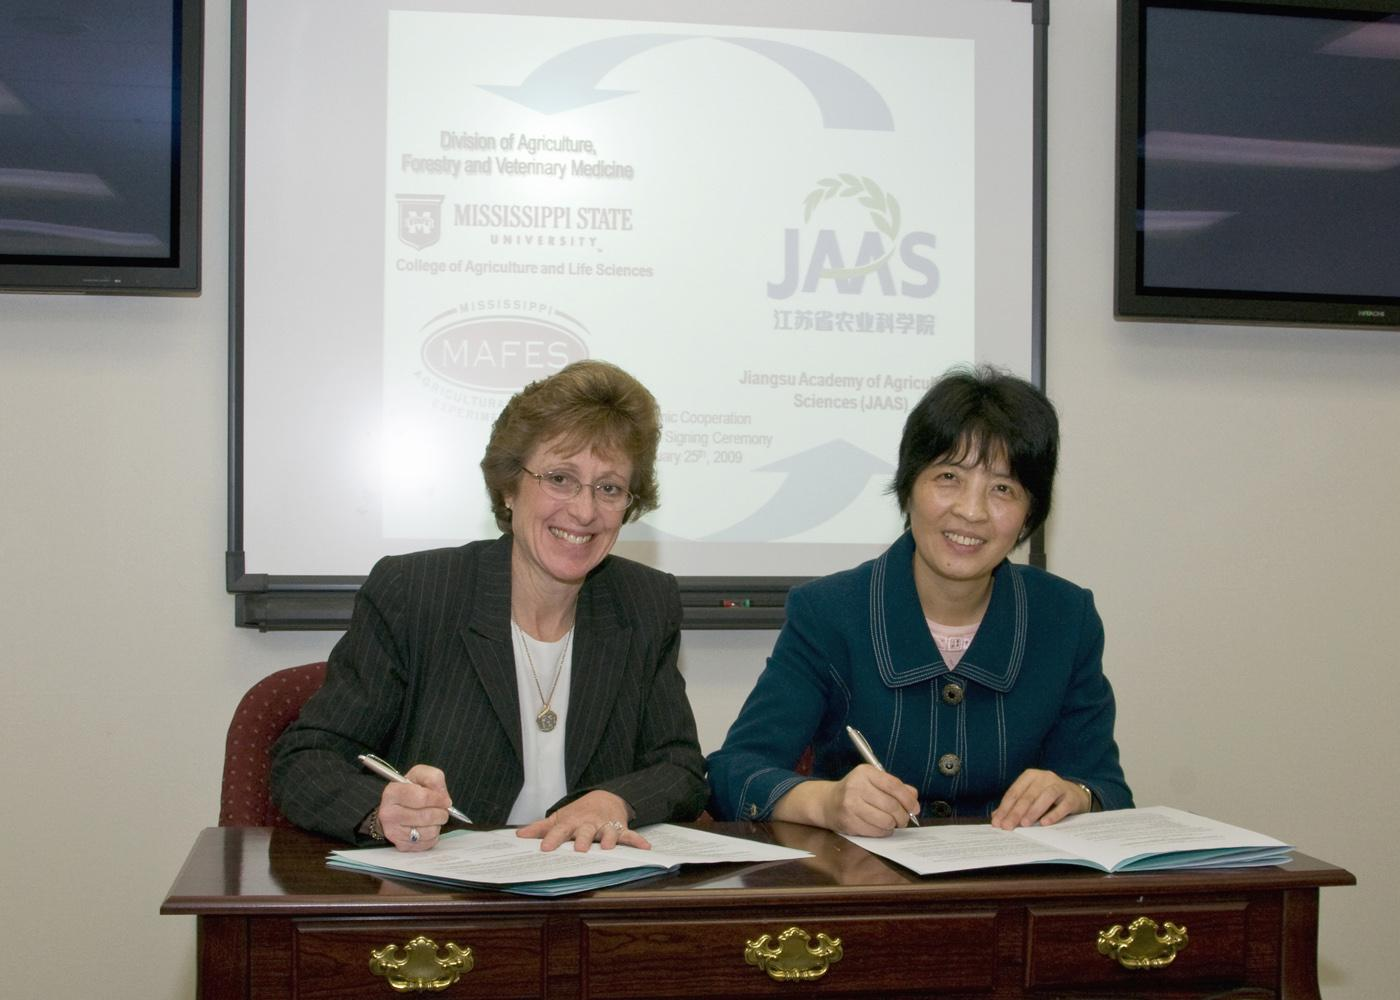 Melissa Mixon, left, and Xiaoxi Lu recently signed a five-year general agreement for academic cooperation between Mississippi State University and China's Jiangsu Academy of Agricultural Sciences. (Photo by Marco Nicovich)